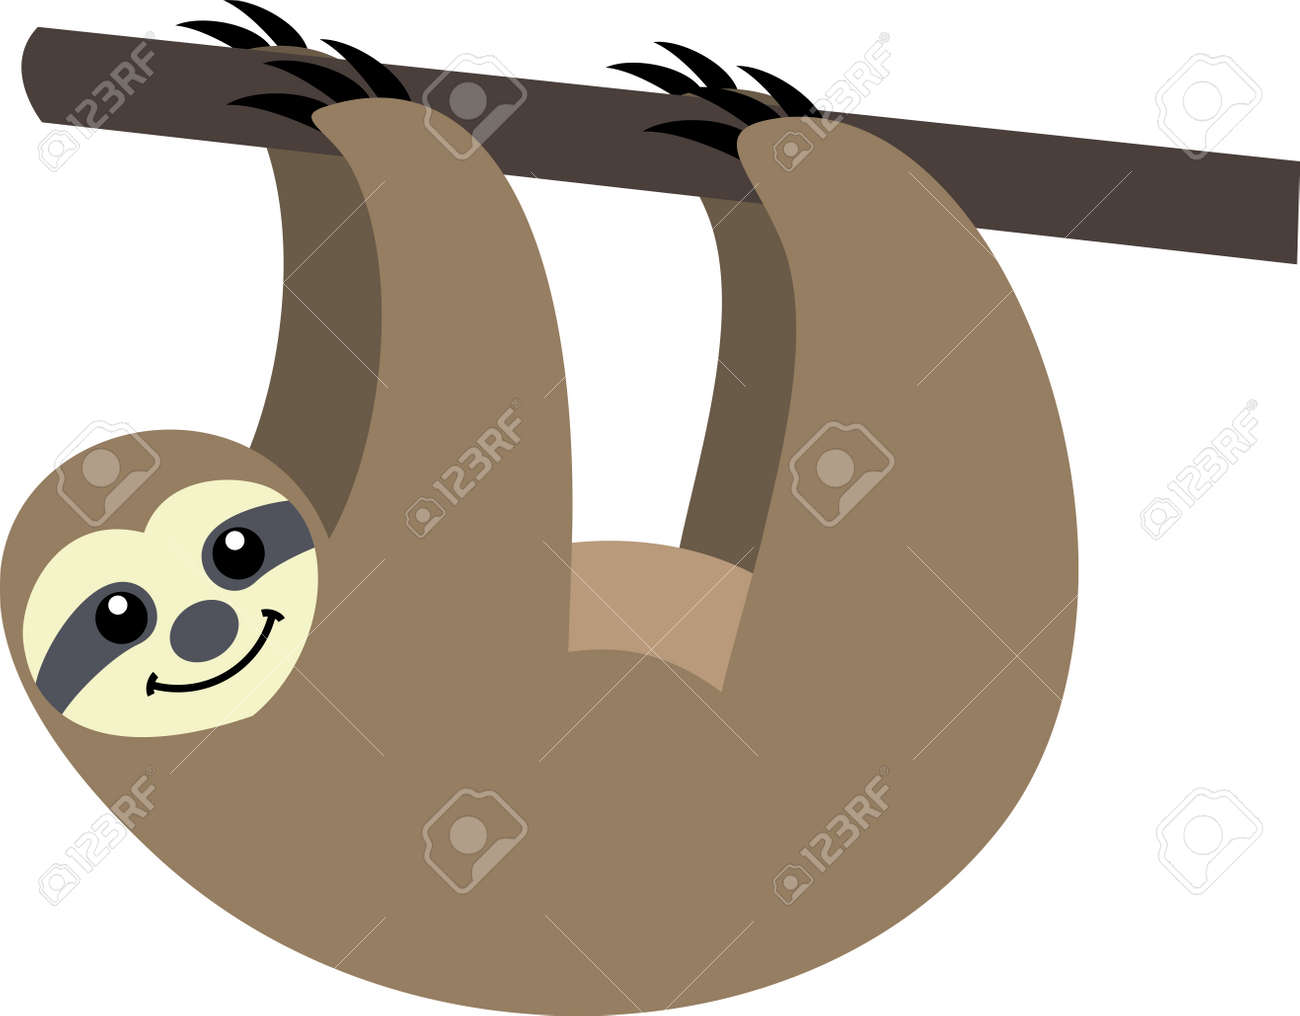 funny sloth royalty free cliparts vectors and stock illustration rh 123rf com sloth clipart gif sloth clipart png